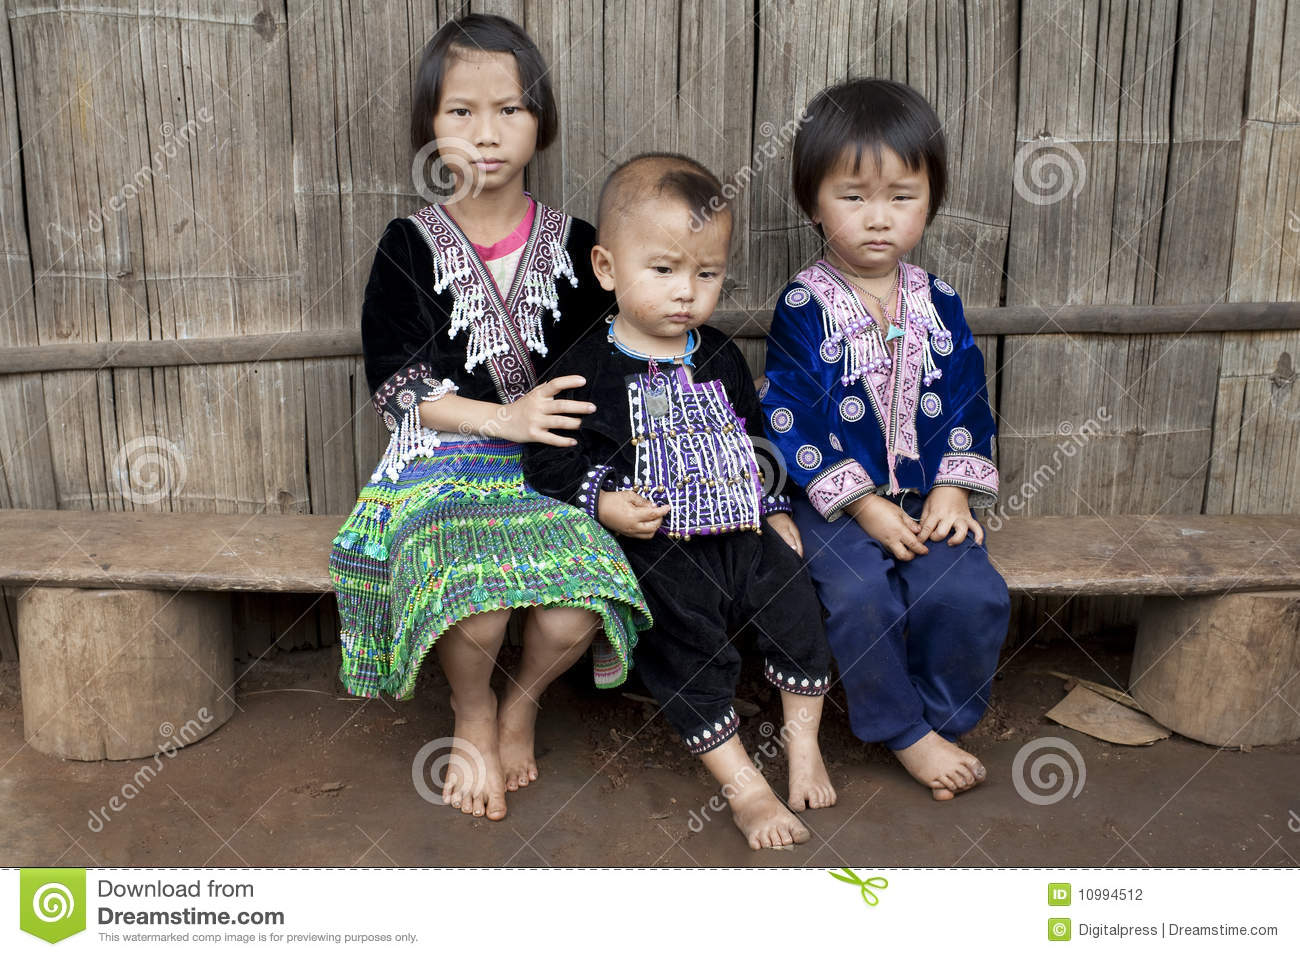 Children of Asia, ethnic group Meo, Hmong